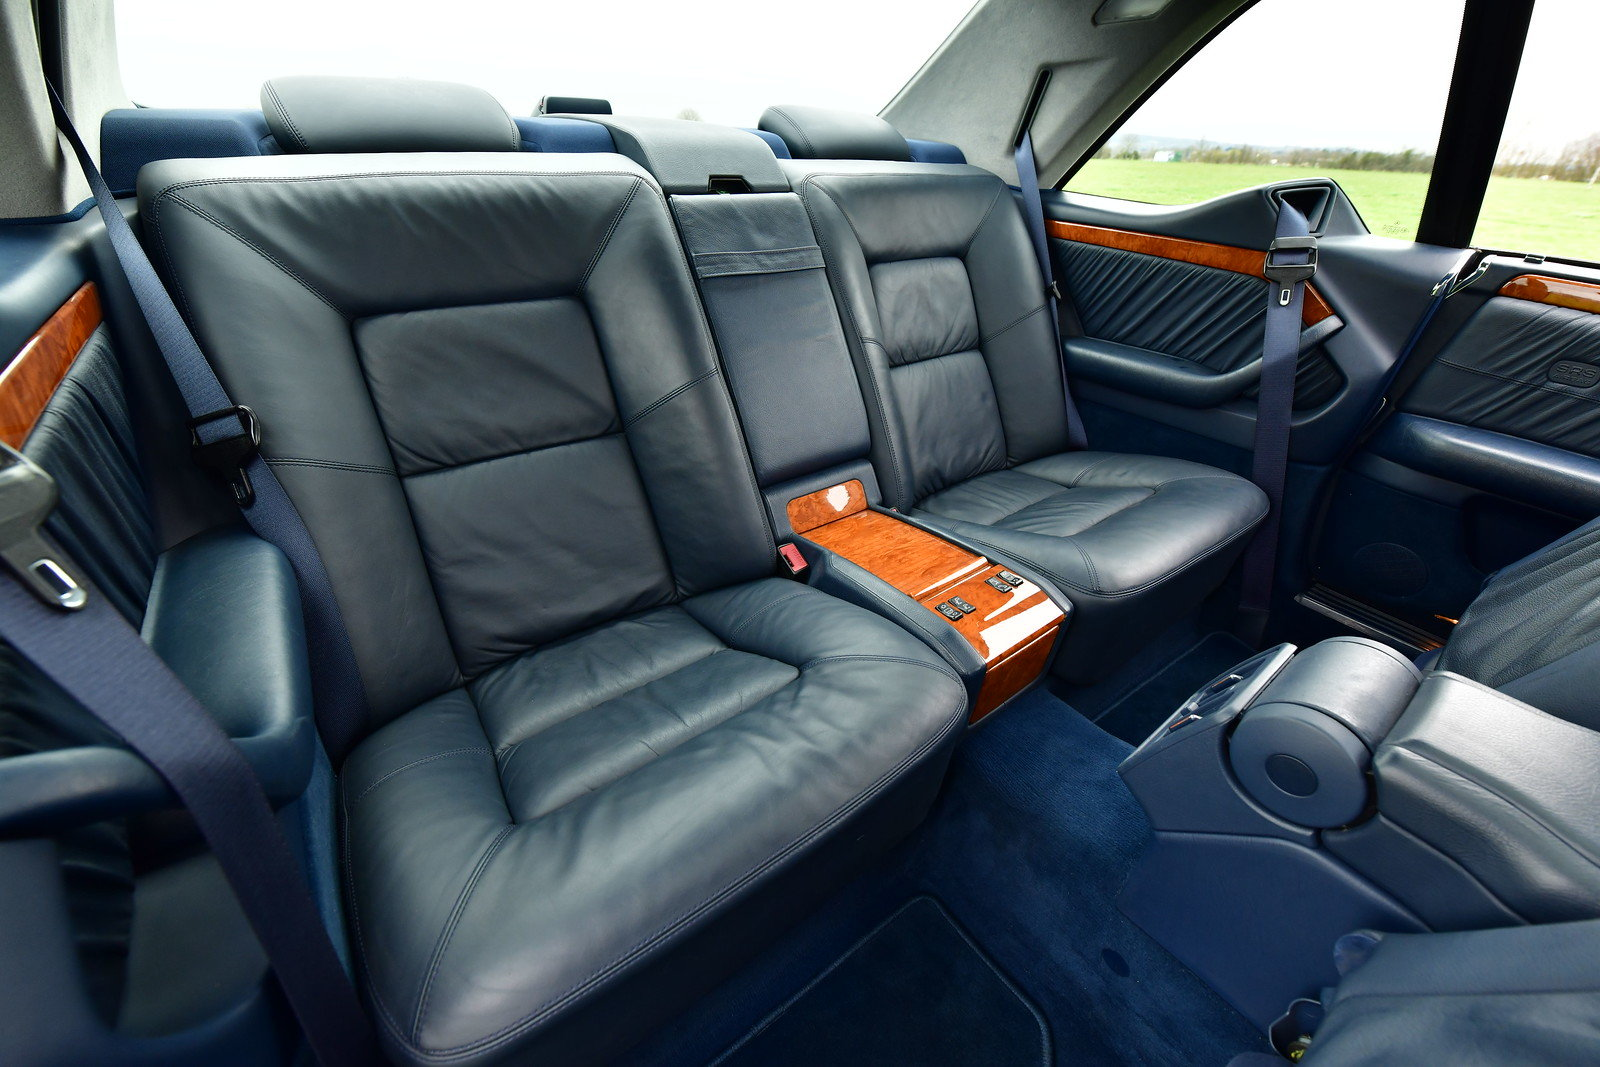 1998 Mercedes-Benz CL500 Sunroof Coupé For Sale (picture 5 of 6)